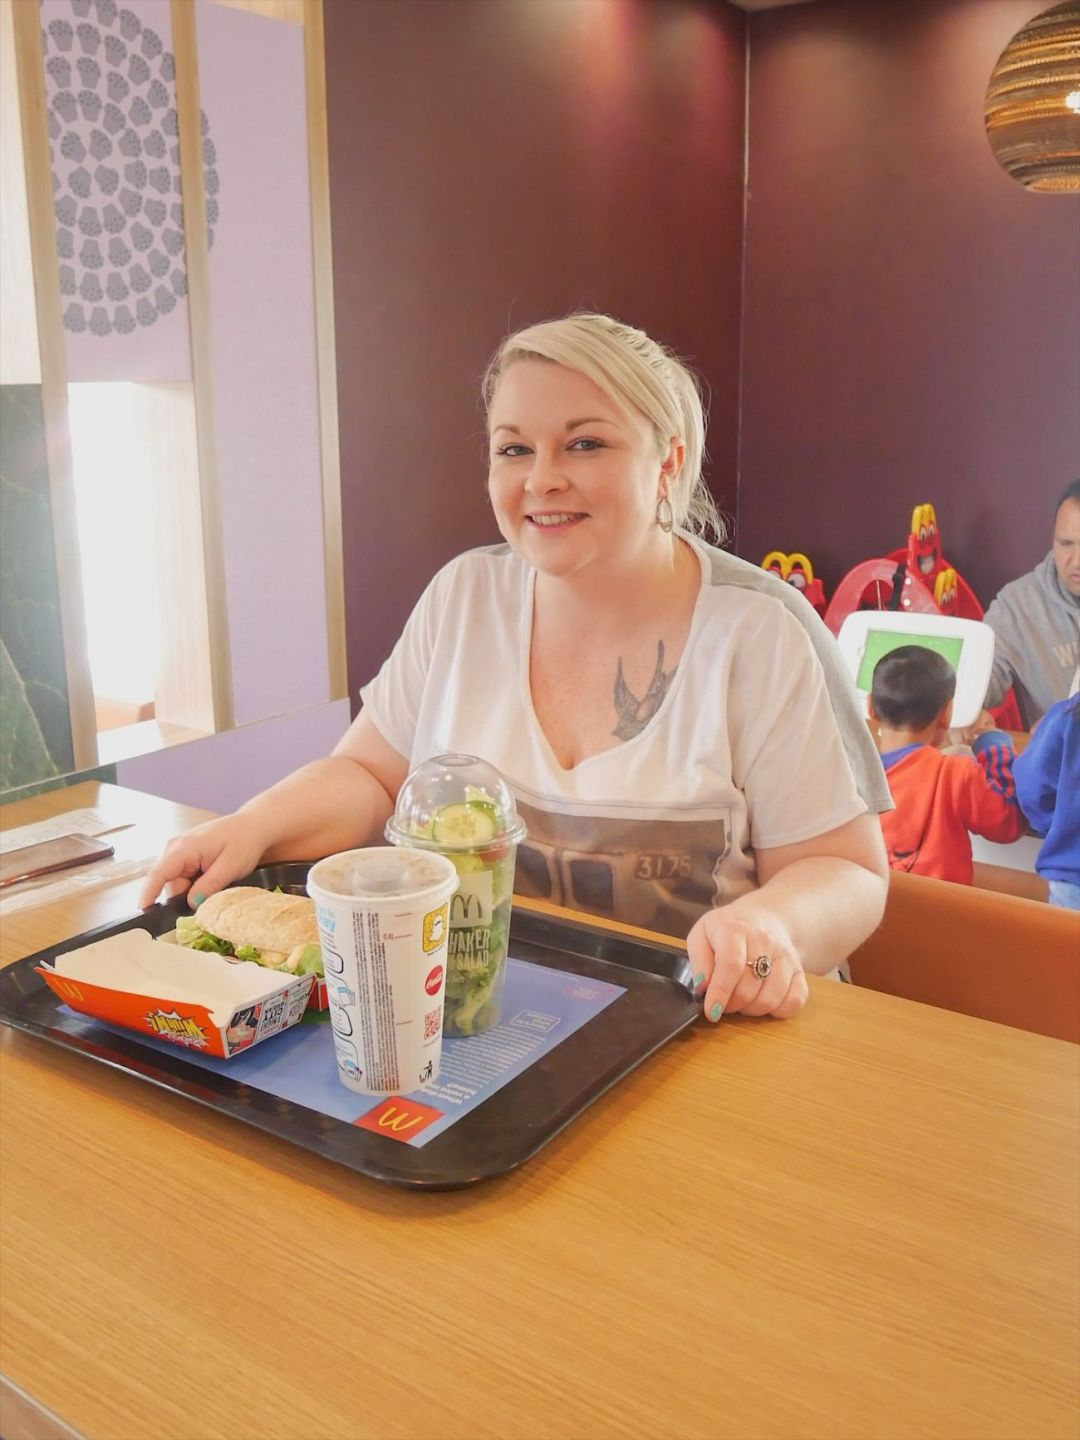 A photo of me with the first meal I ordered using McDonald's Table Service